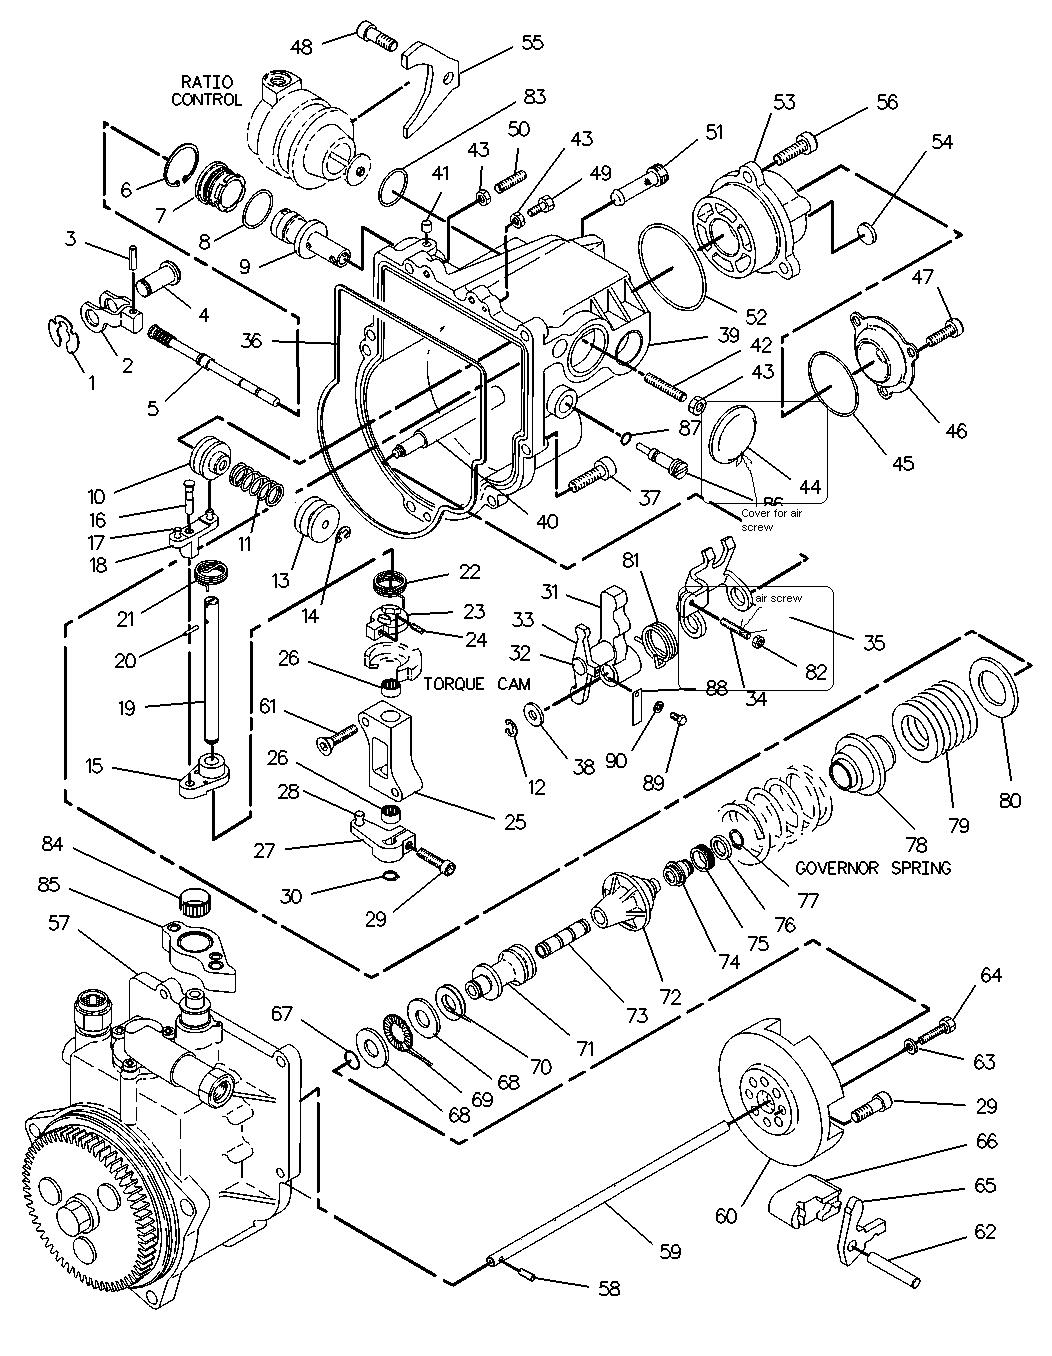 3126 caterpillar engine parts diagram